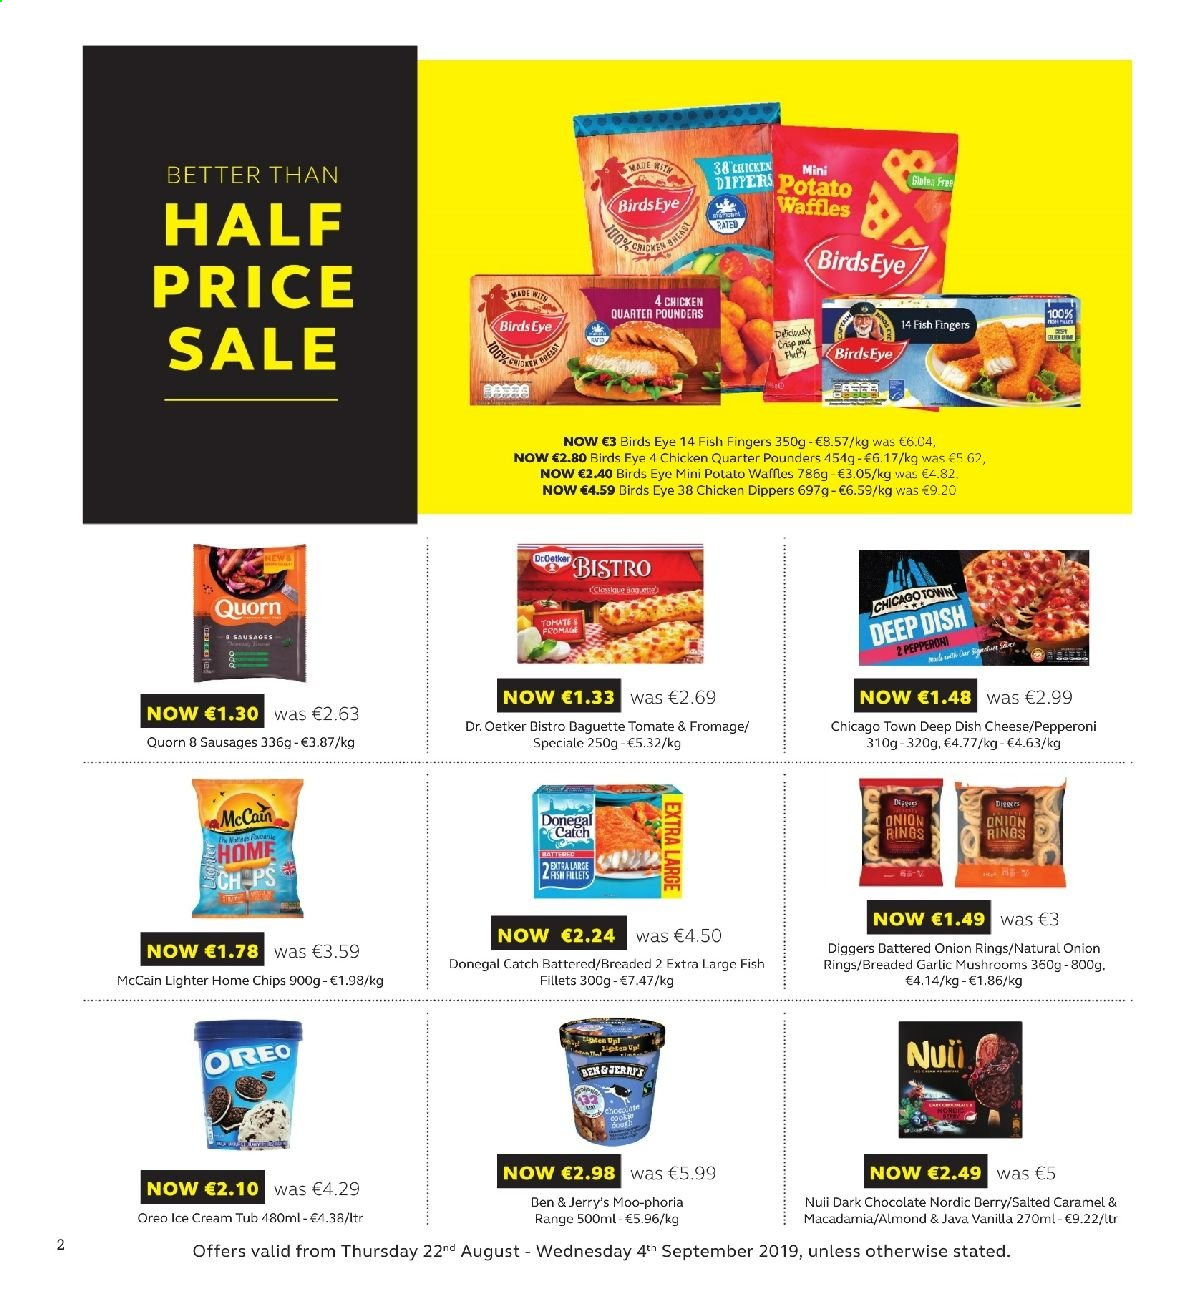 SuperValu offer  - 22.8.2019 - 4.9.2019 - Sales products - mushroom, baguette, waffles, fish fillets, fish, fish fingers, onion rings, Bird's Eye, sausage, pepperoni, cheese, Dr. Oetker, Oreo, ice cream, Donegal Catch, McCain, chocolate, dark chocolate, chips, macadamia nuts, chicken dippers. Page 2.